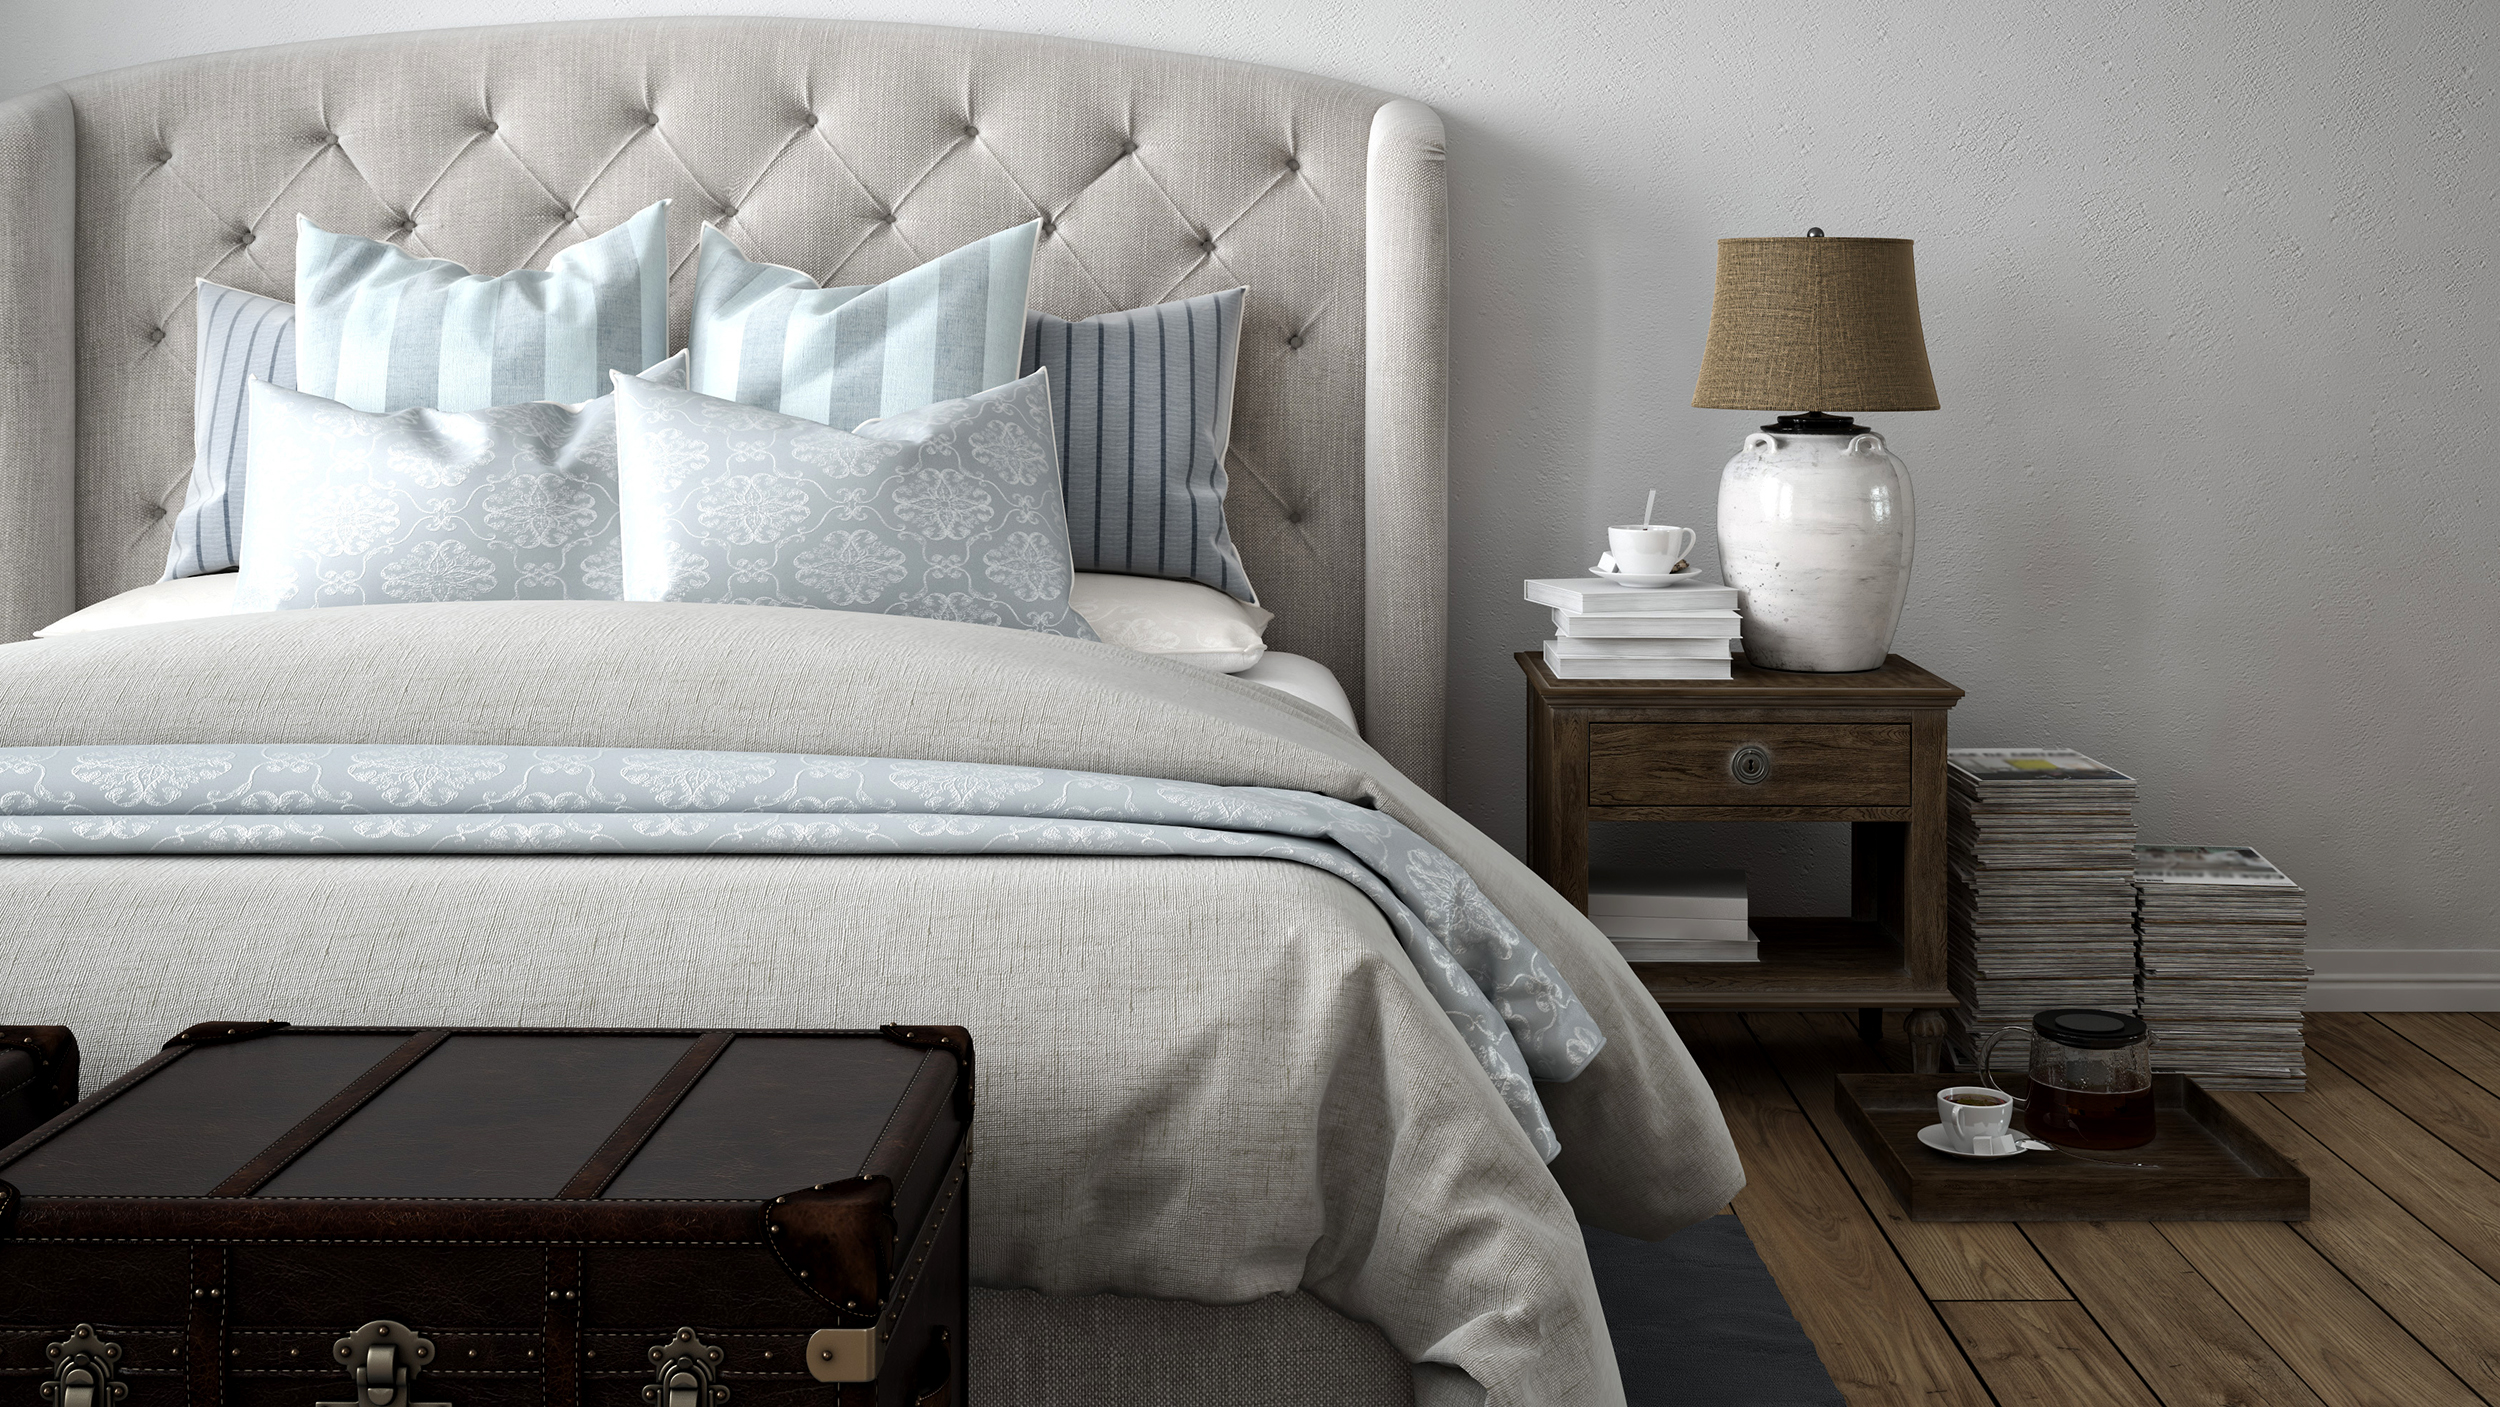 Spring Cleaning Bedroom: How To Clean Your Bedroom Like A